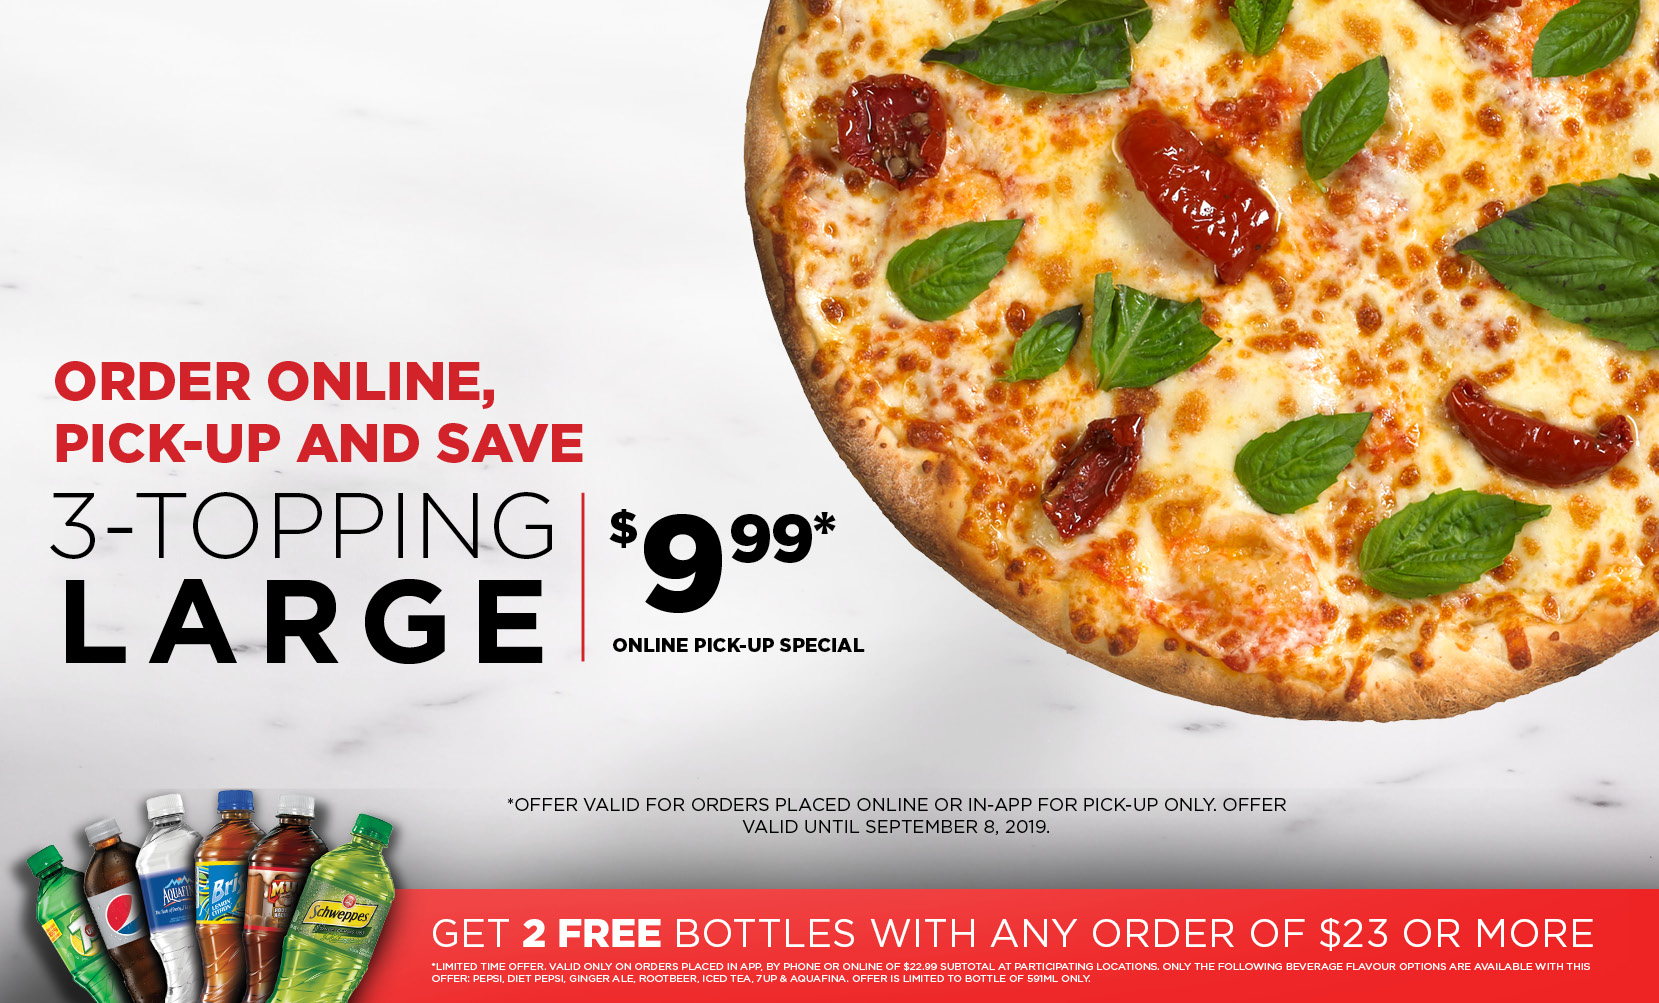 Pizzaville - #3636 from your cell or Order Online